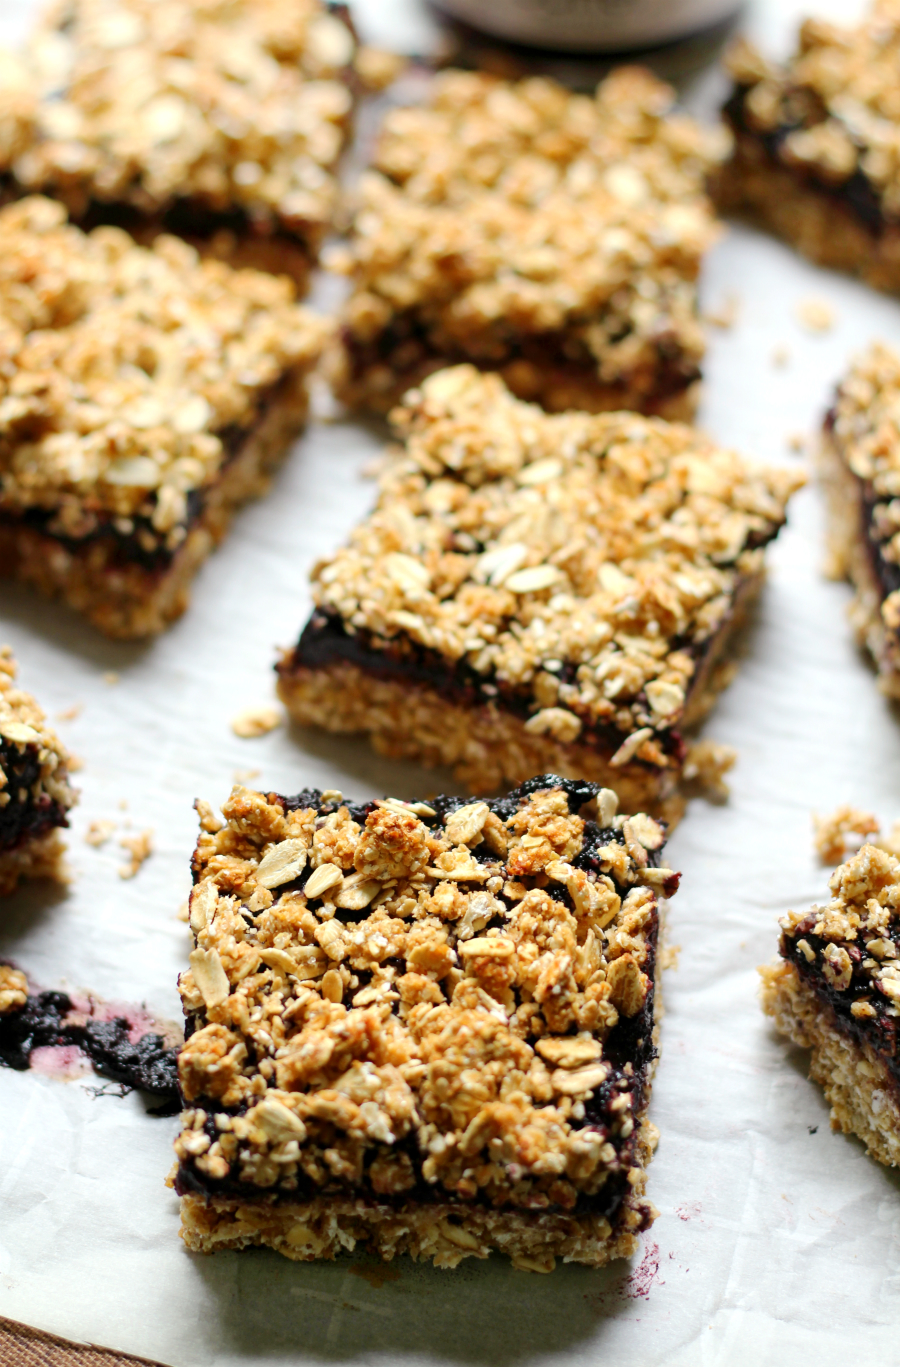 Peanut Butter & Jelly Crumble Bars | Strength and Sunshine @RebeccaGF666 Everyone's childhood favorite sandwich baked into a delicious gluten-free and vegan bar! Peanut Butter & Jelly Crumble Bars that can be eaten for breakfast, lunch, as a snack, or dessert! This healthy bar recipe will have you ditching the bread!